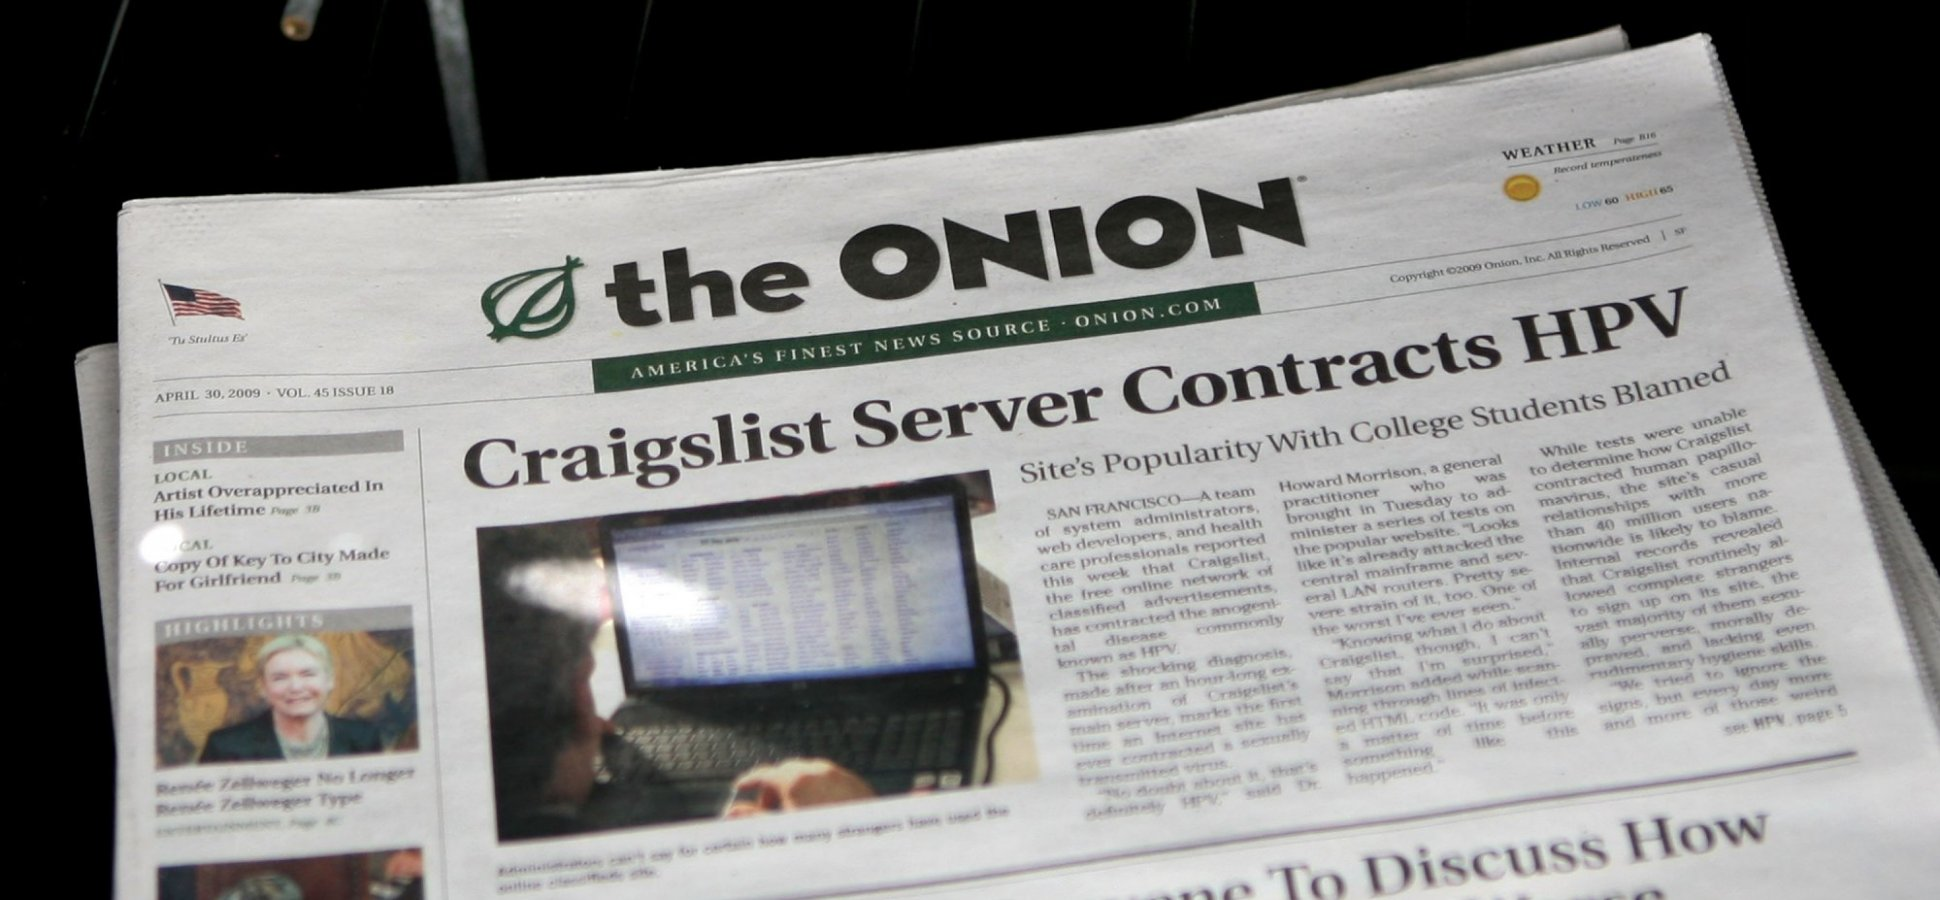 The 3-Step Brainstorming Process 'The Onion' Uses to Come Up With So Many Hilarious Ideas